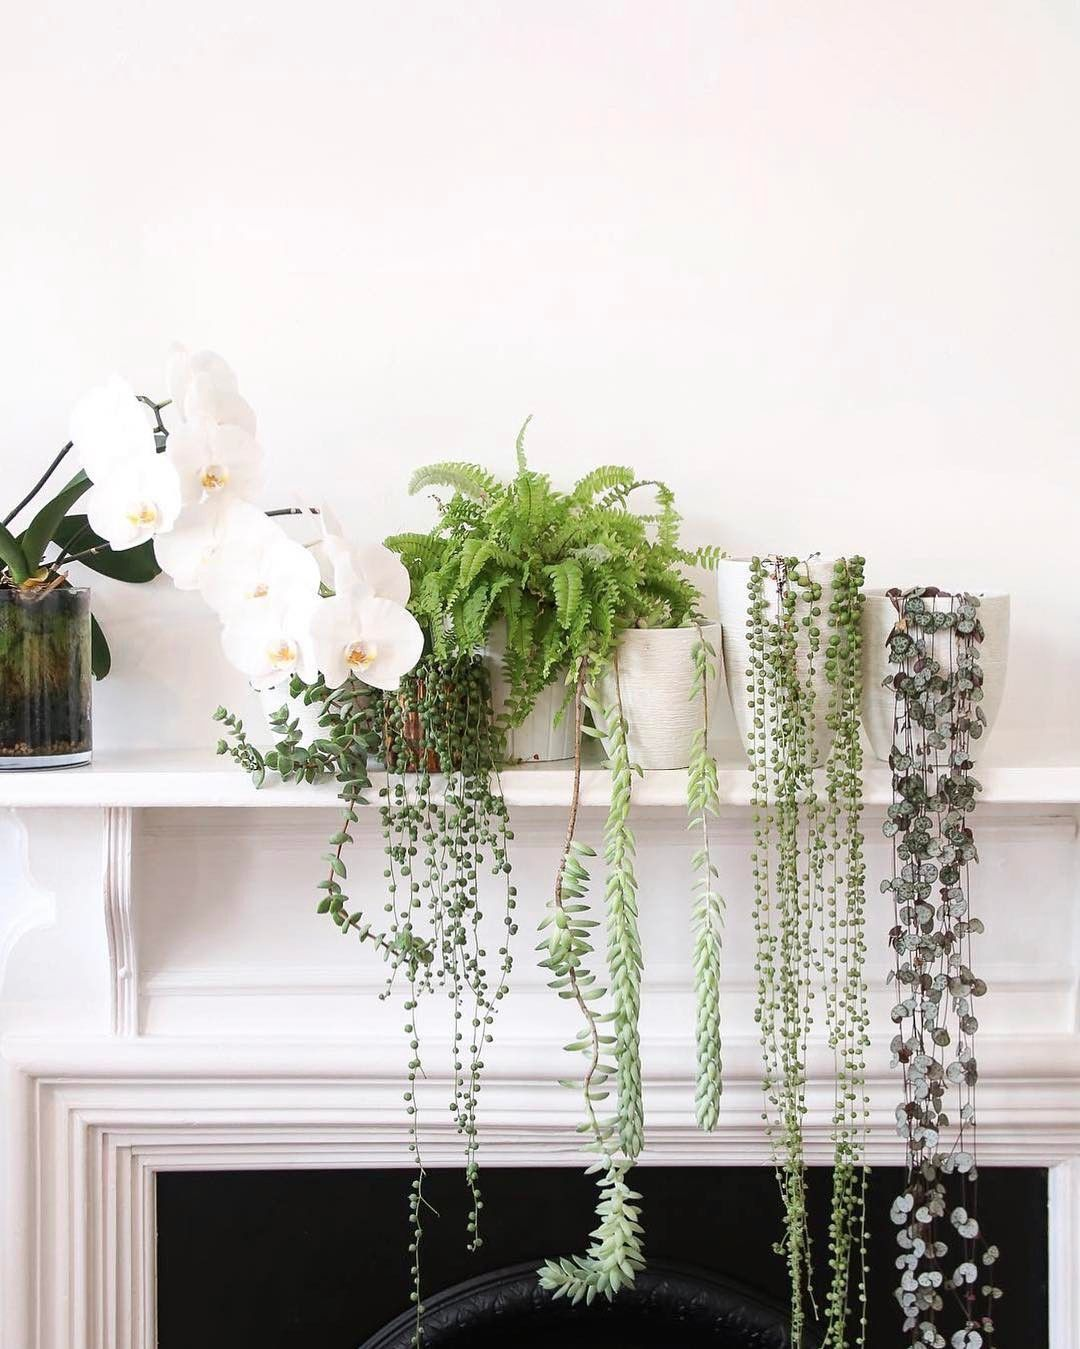 Tree Inside The House Interior Climate Controlled: This Mantel Laden With Plants Showcases Some Of Our Very